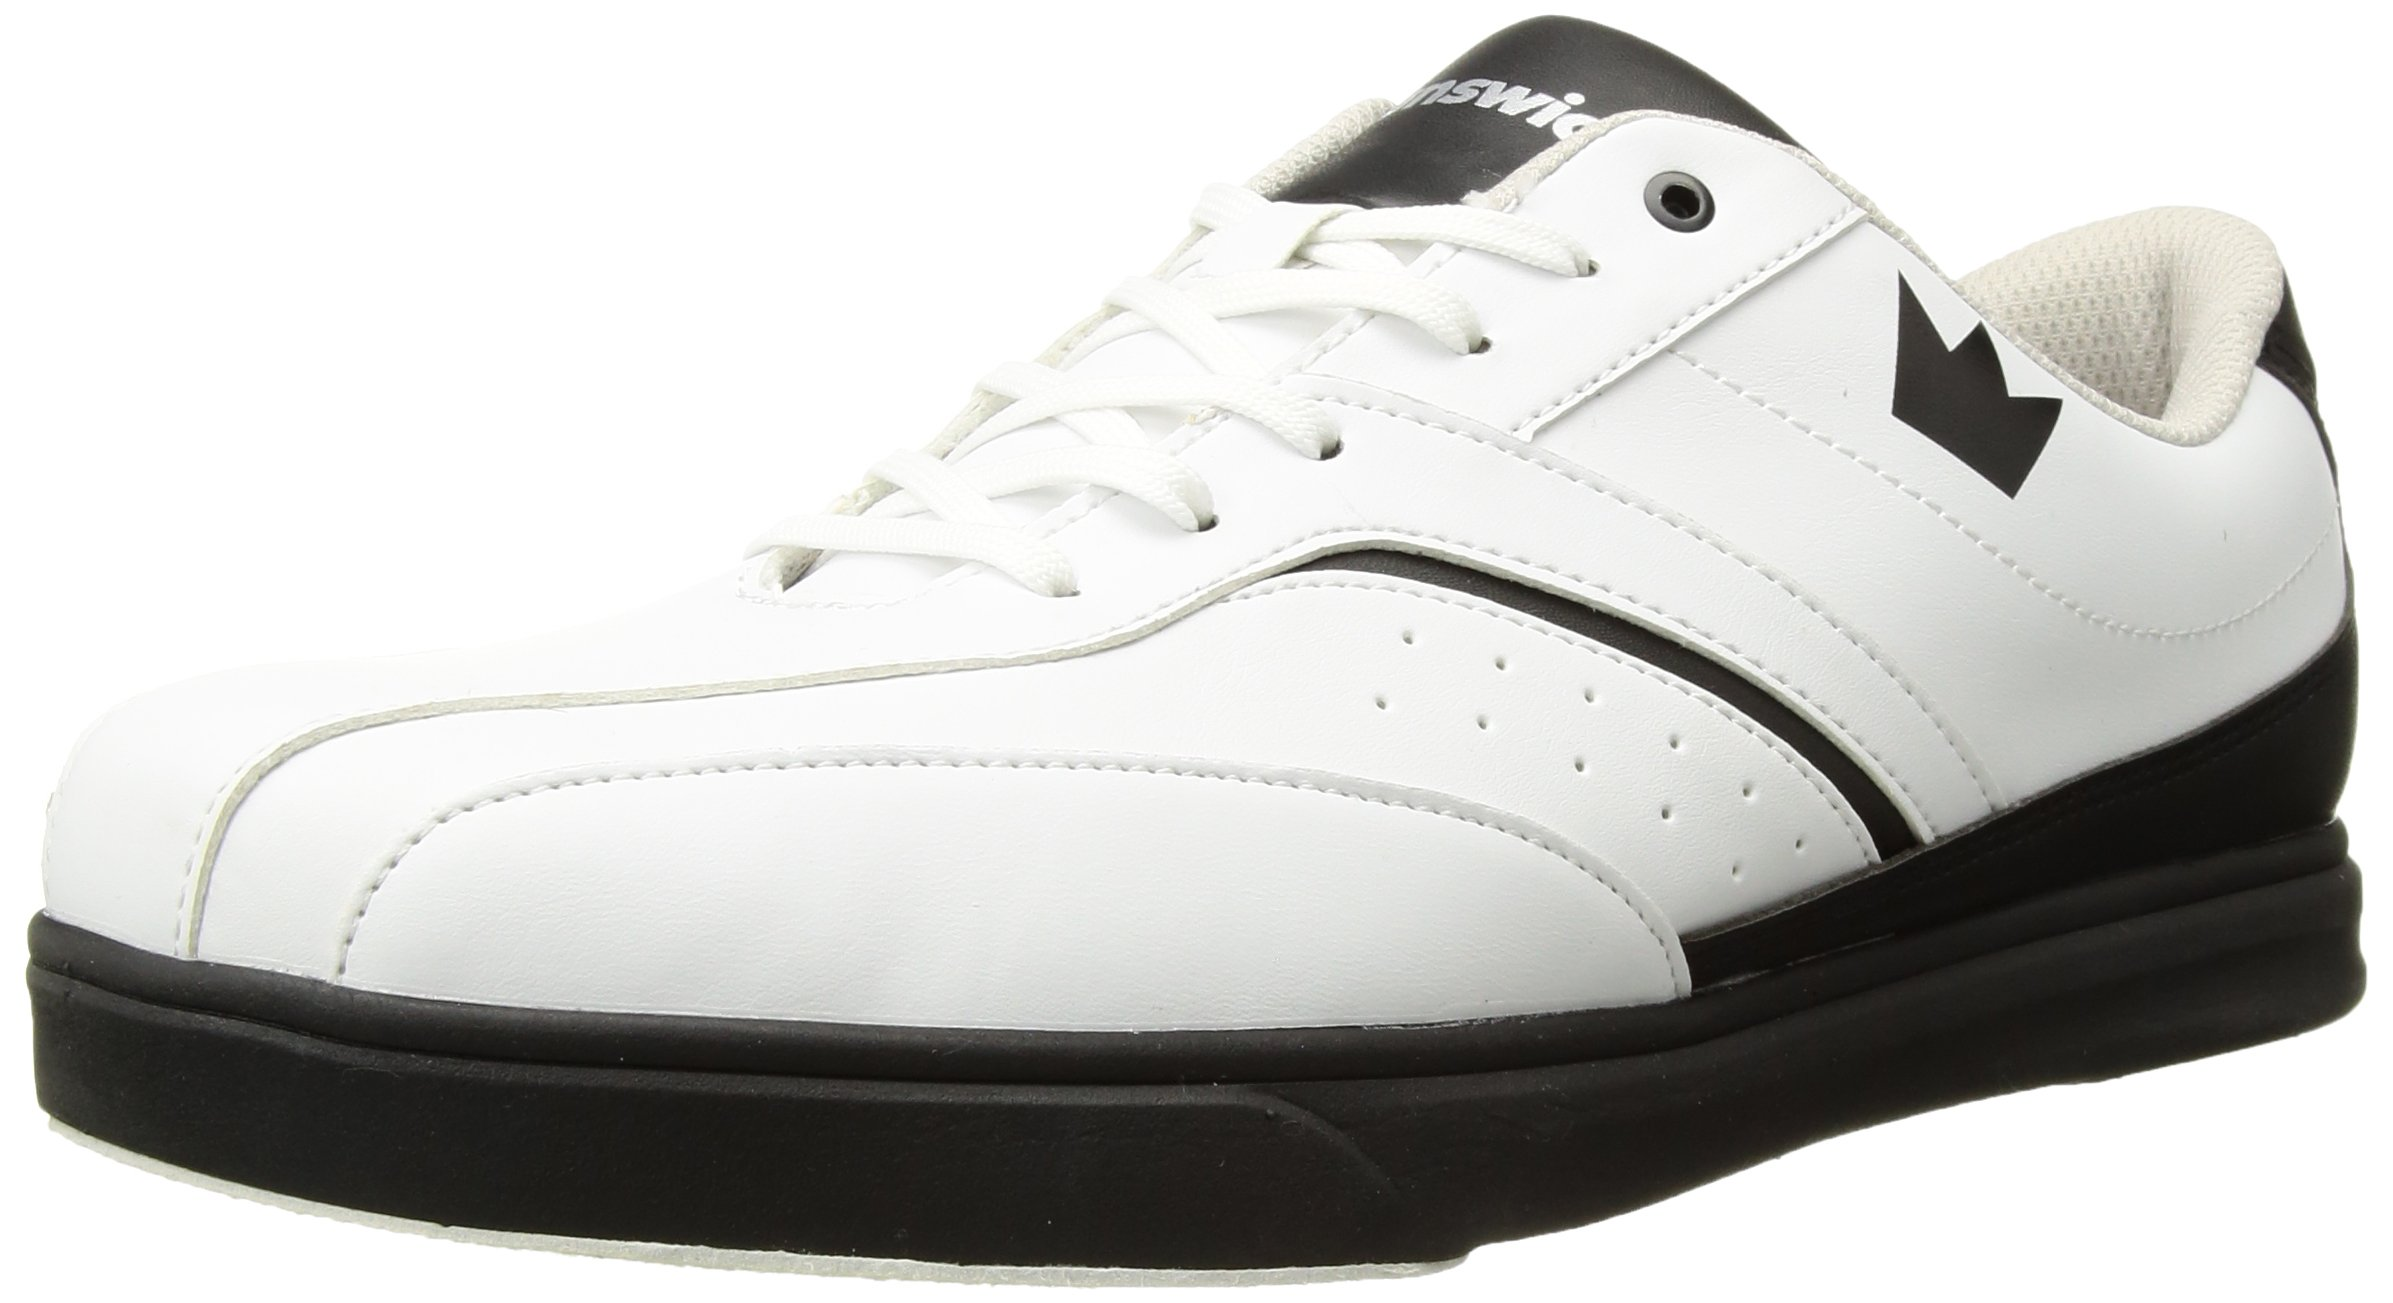 Brunswick Vapor Mens Bowling Shoe White/Black, 7.0 by Brunswick